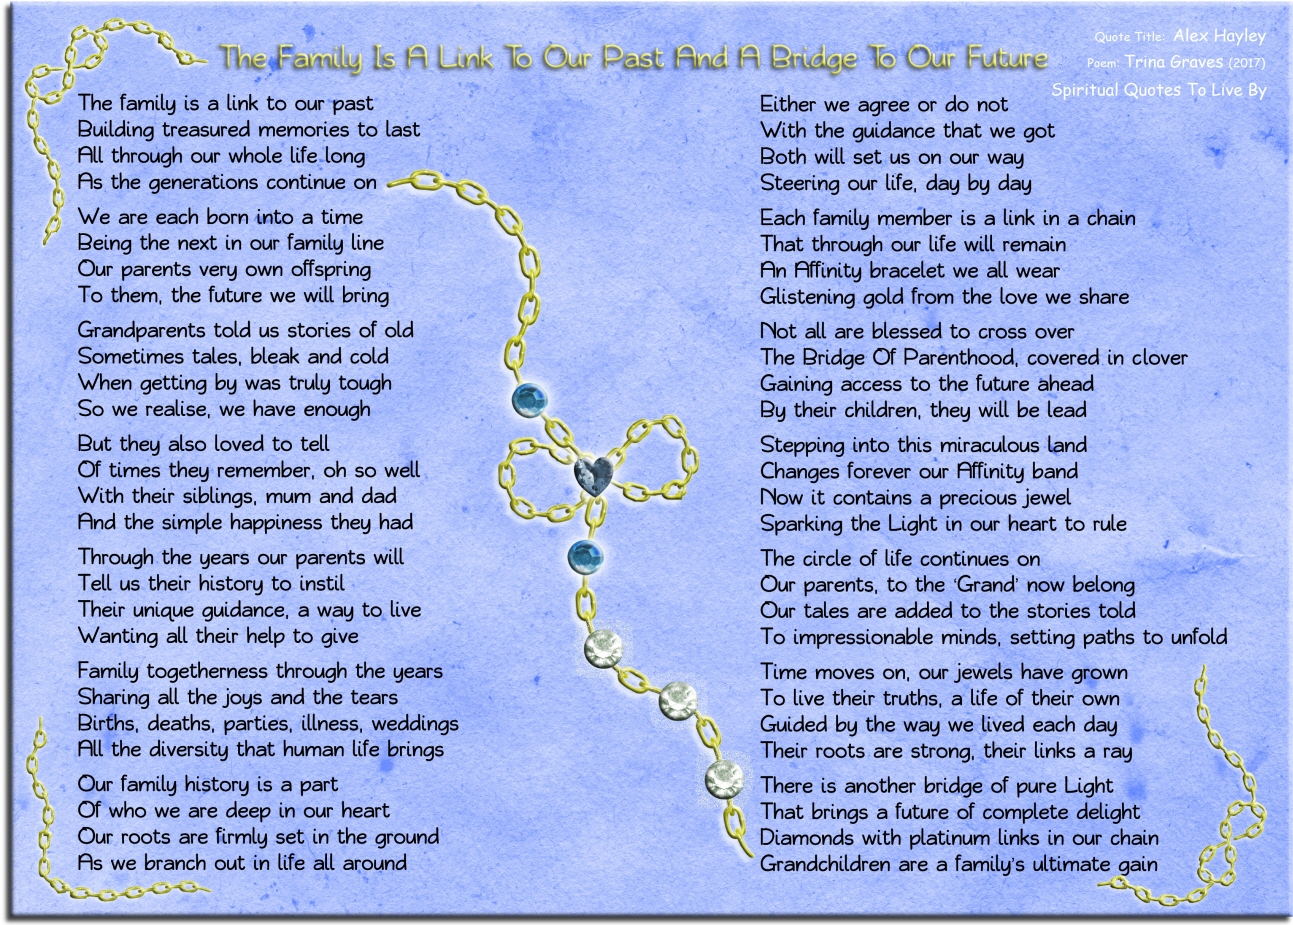 The family is a link to our past and a bridge to our future. Inspirational poem using quote from Alex Hayley as the title and theme - Poem by Trina Graves - Spiritual Quotes To Live By